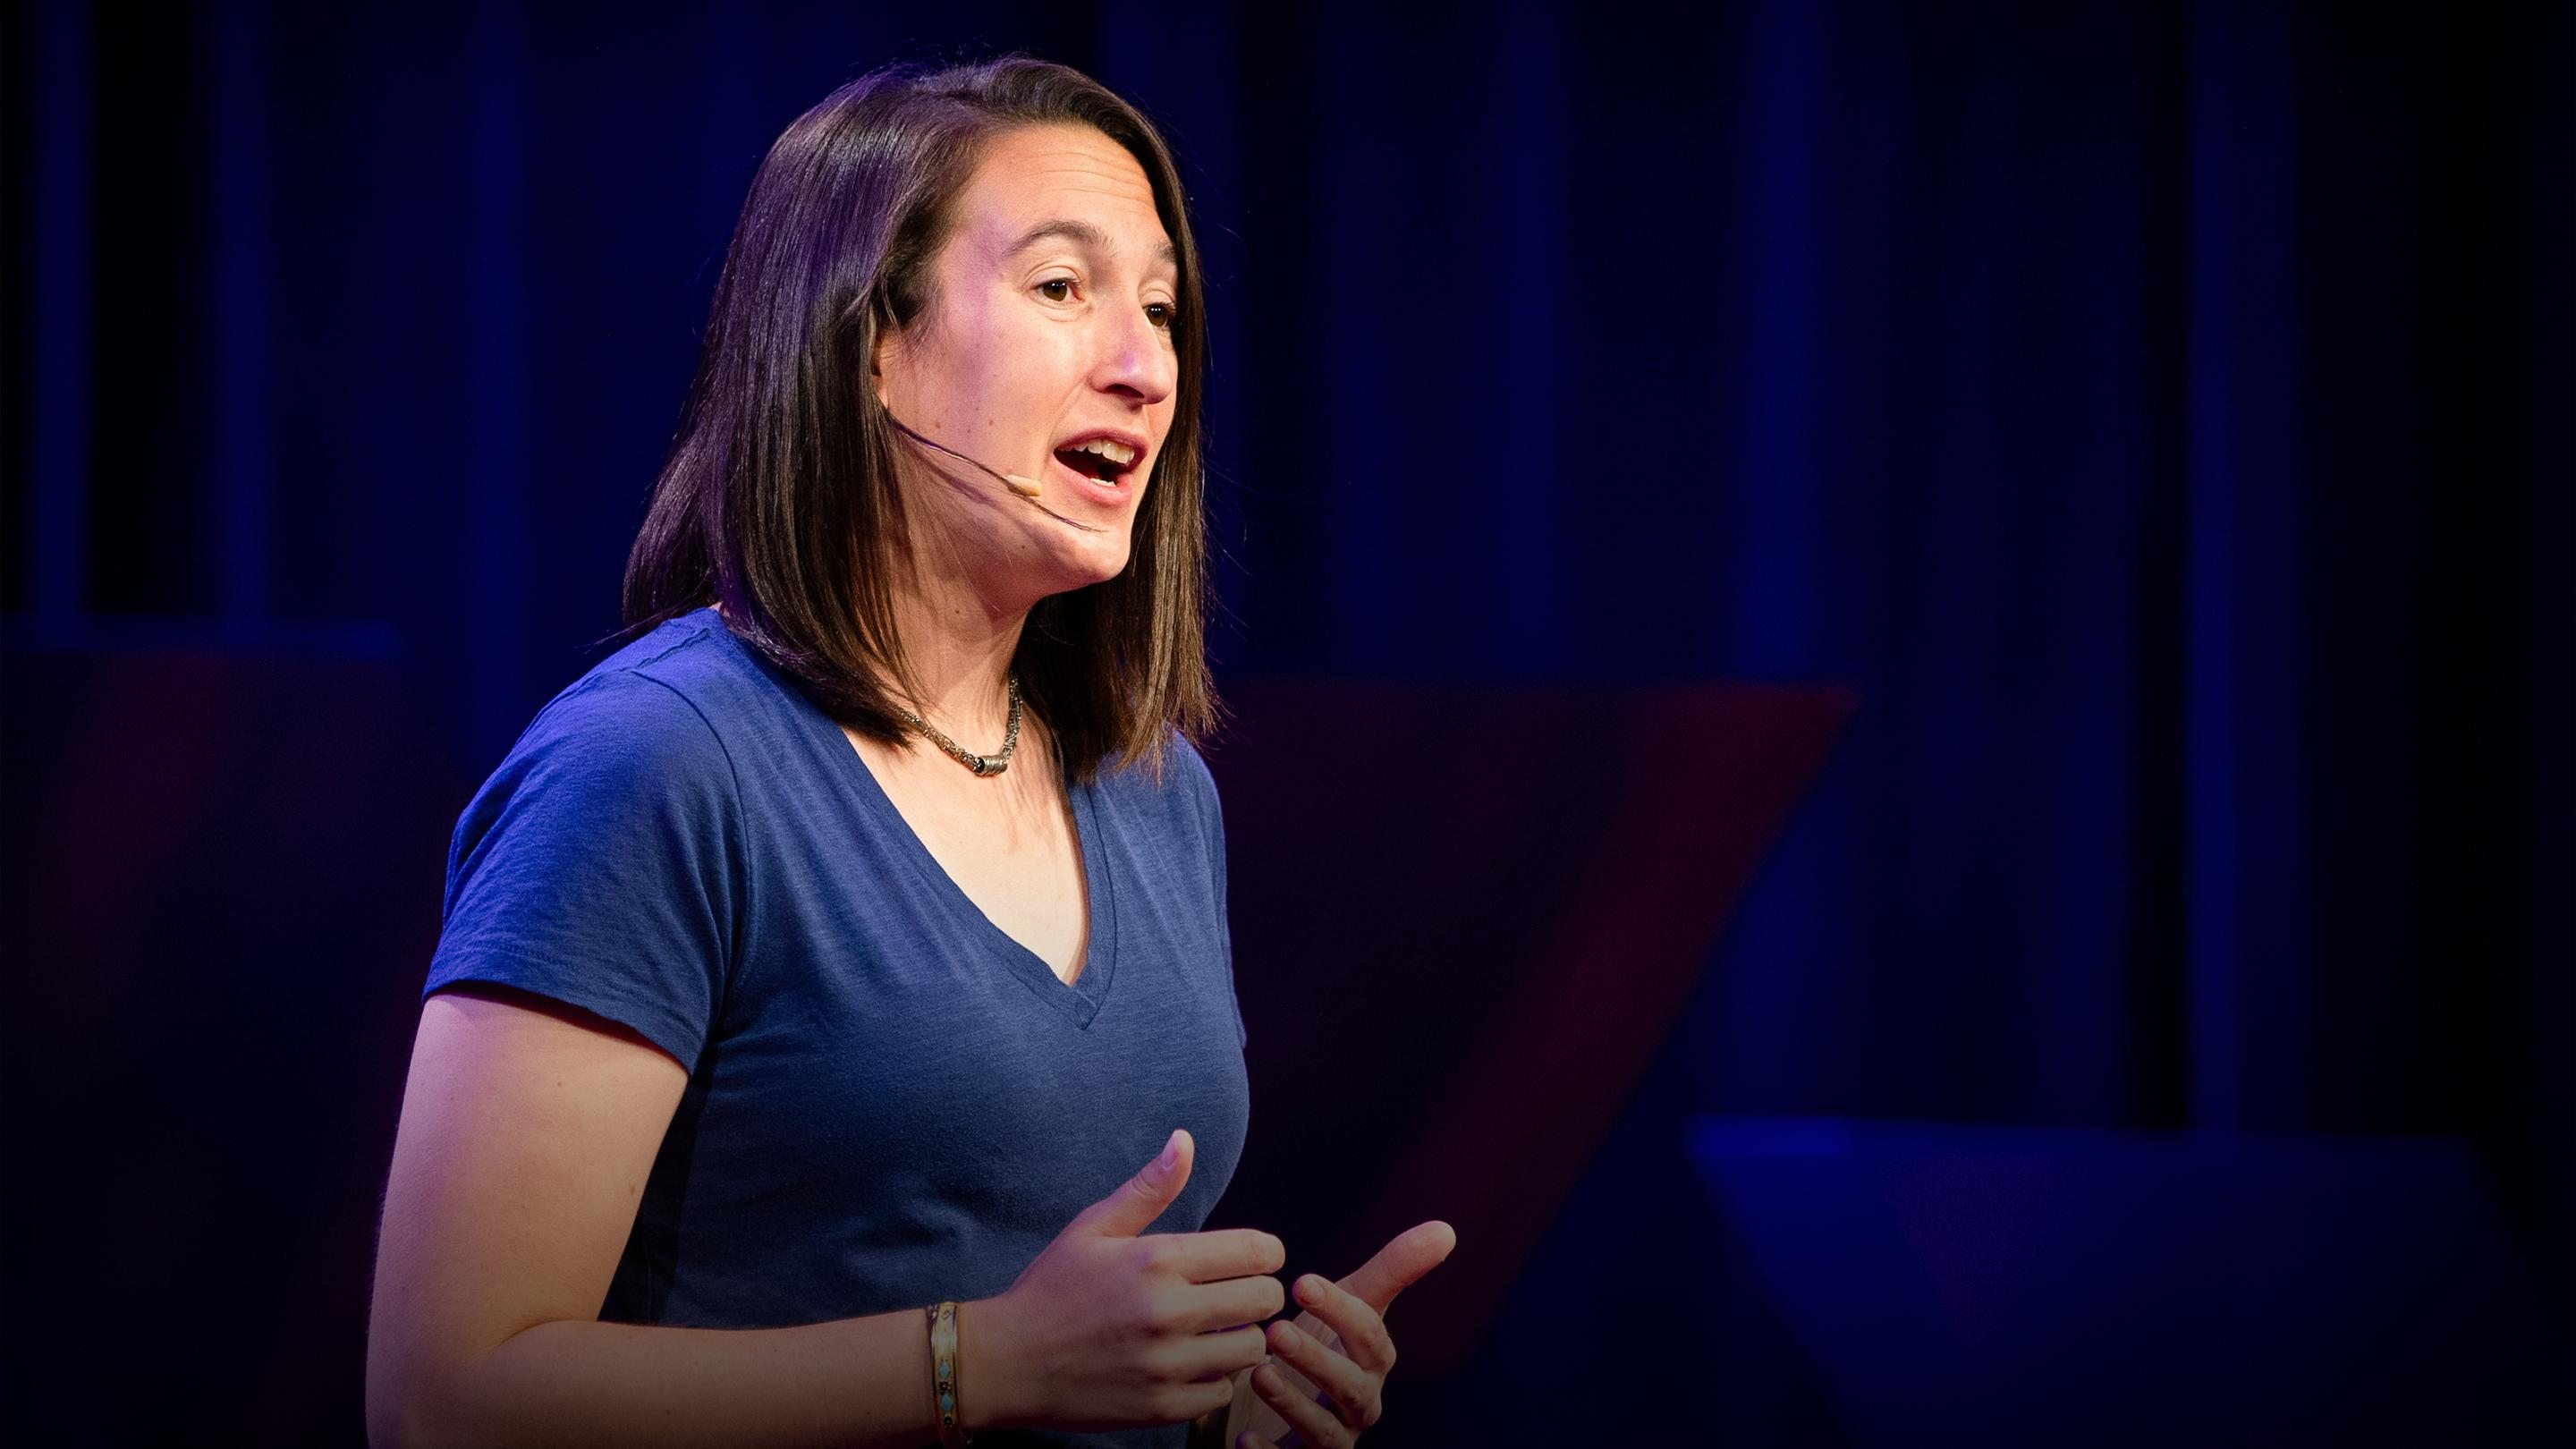 An idea from TED by Sarah Kurnick entitled You don't need aliens to make history interesting